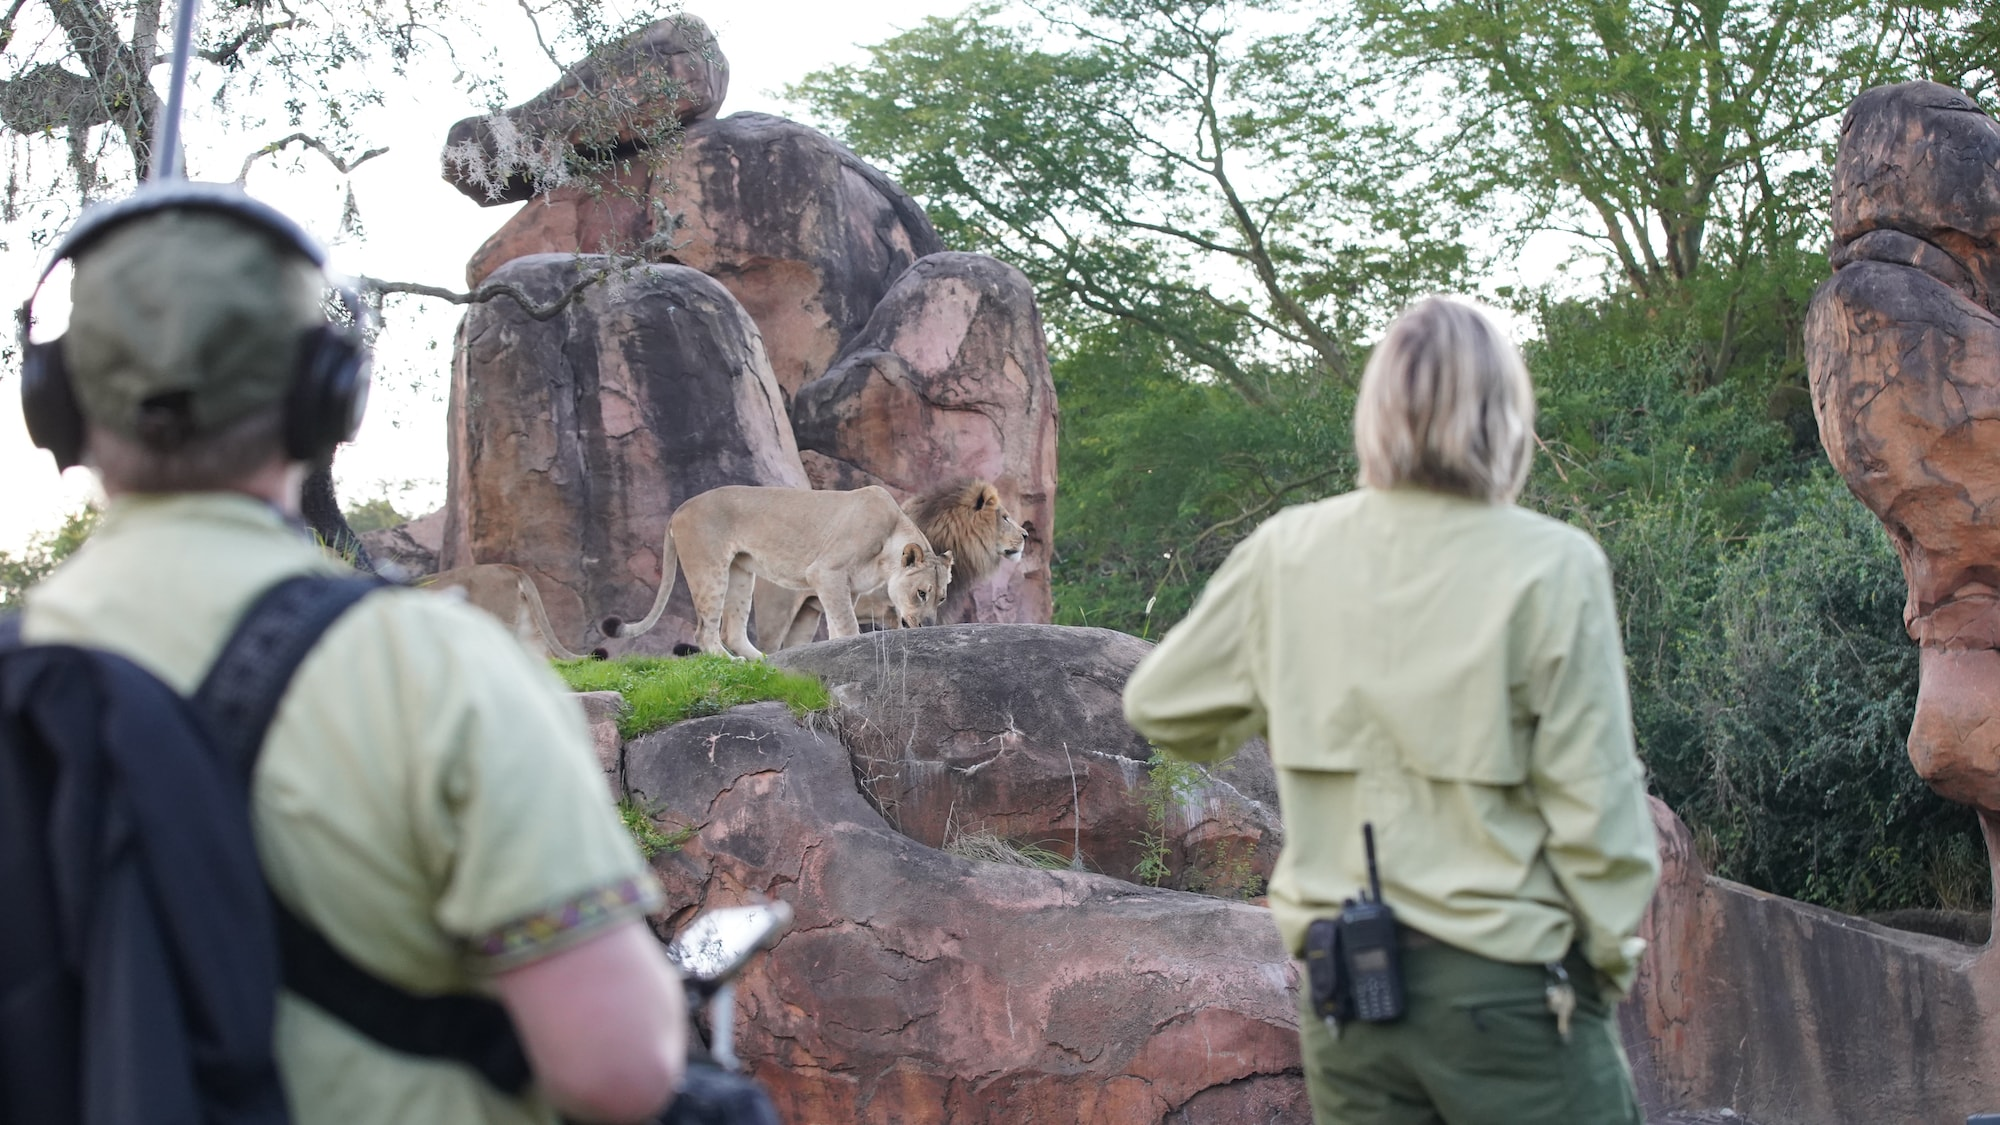 Production team and keeper observing lions Kinsey and Dakari. (Disney)